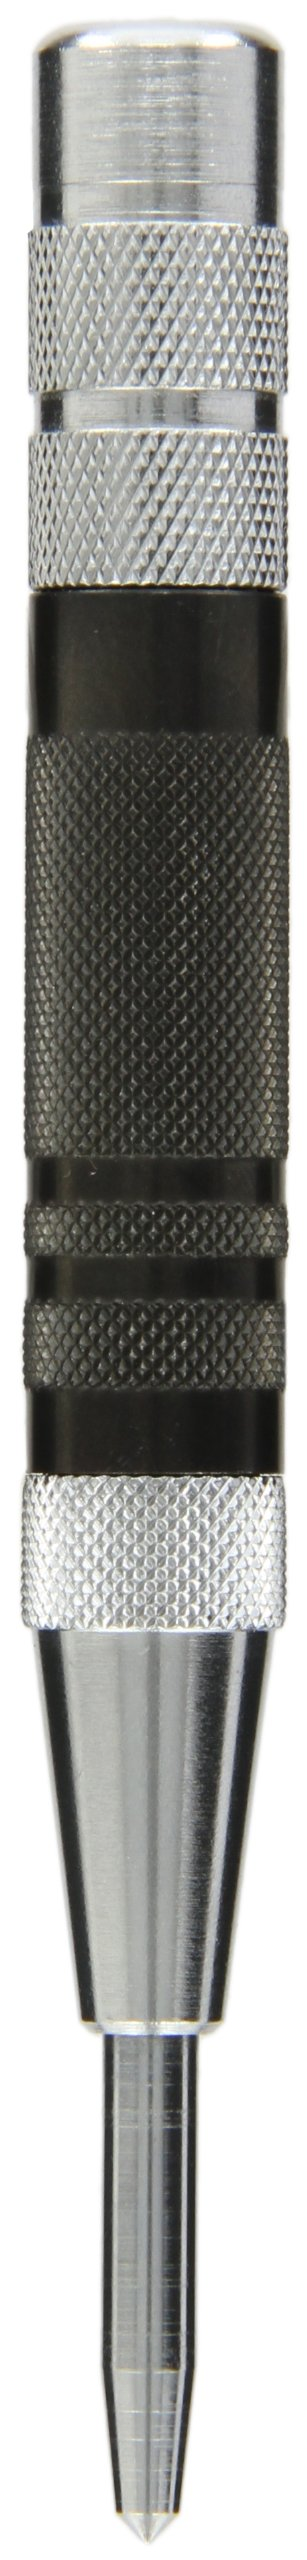 Fowler 52-500-290 Hardened Steel Super Heavy Duty Automatic Center Punch, 6'' Length, 0.625'' Diameter